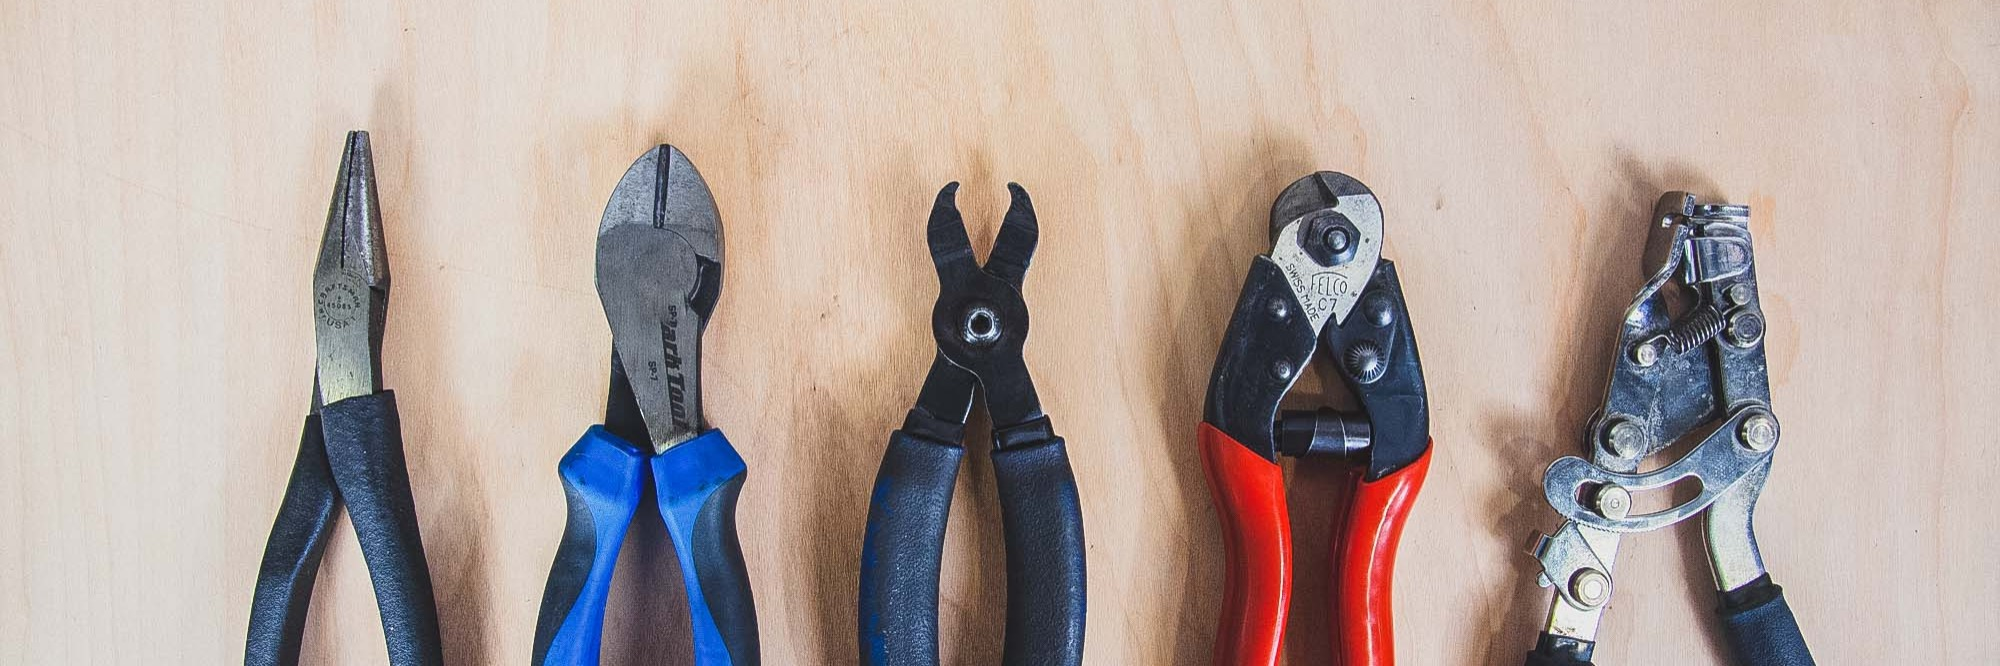 Recommended Bike Tools